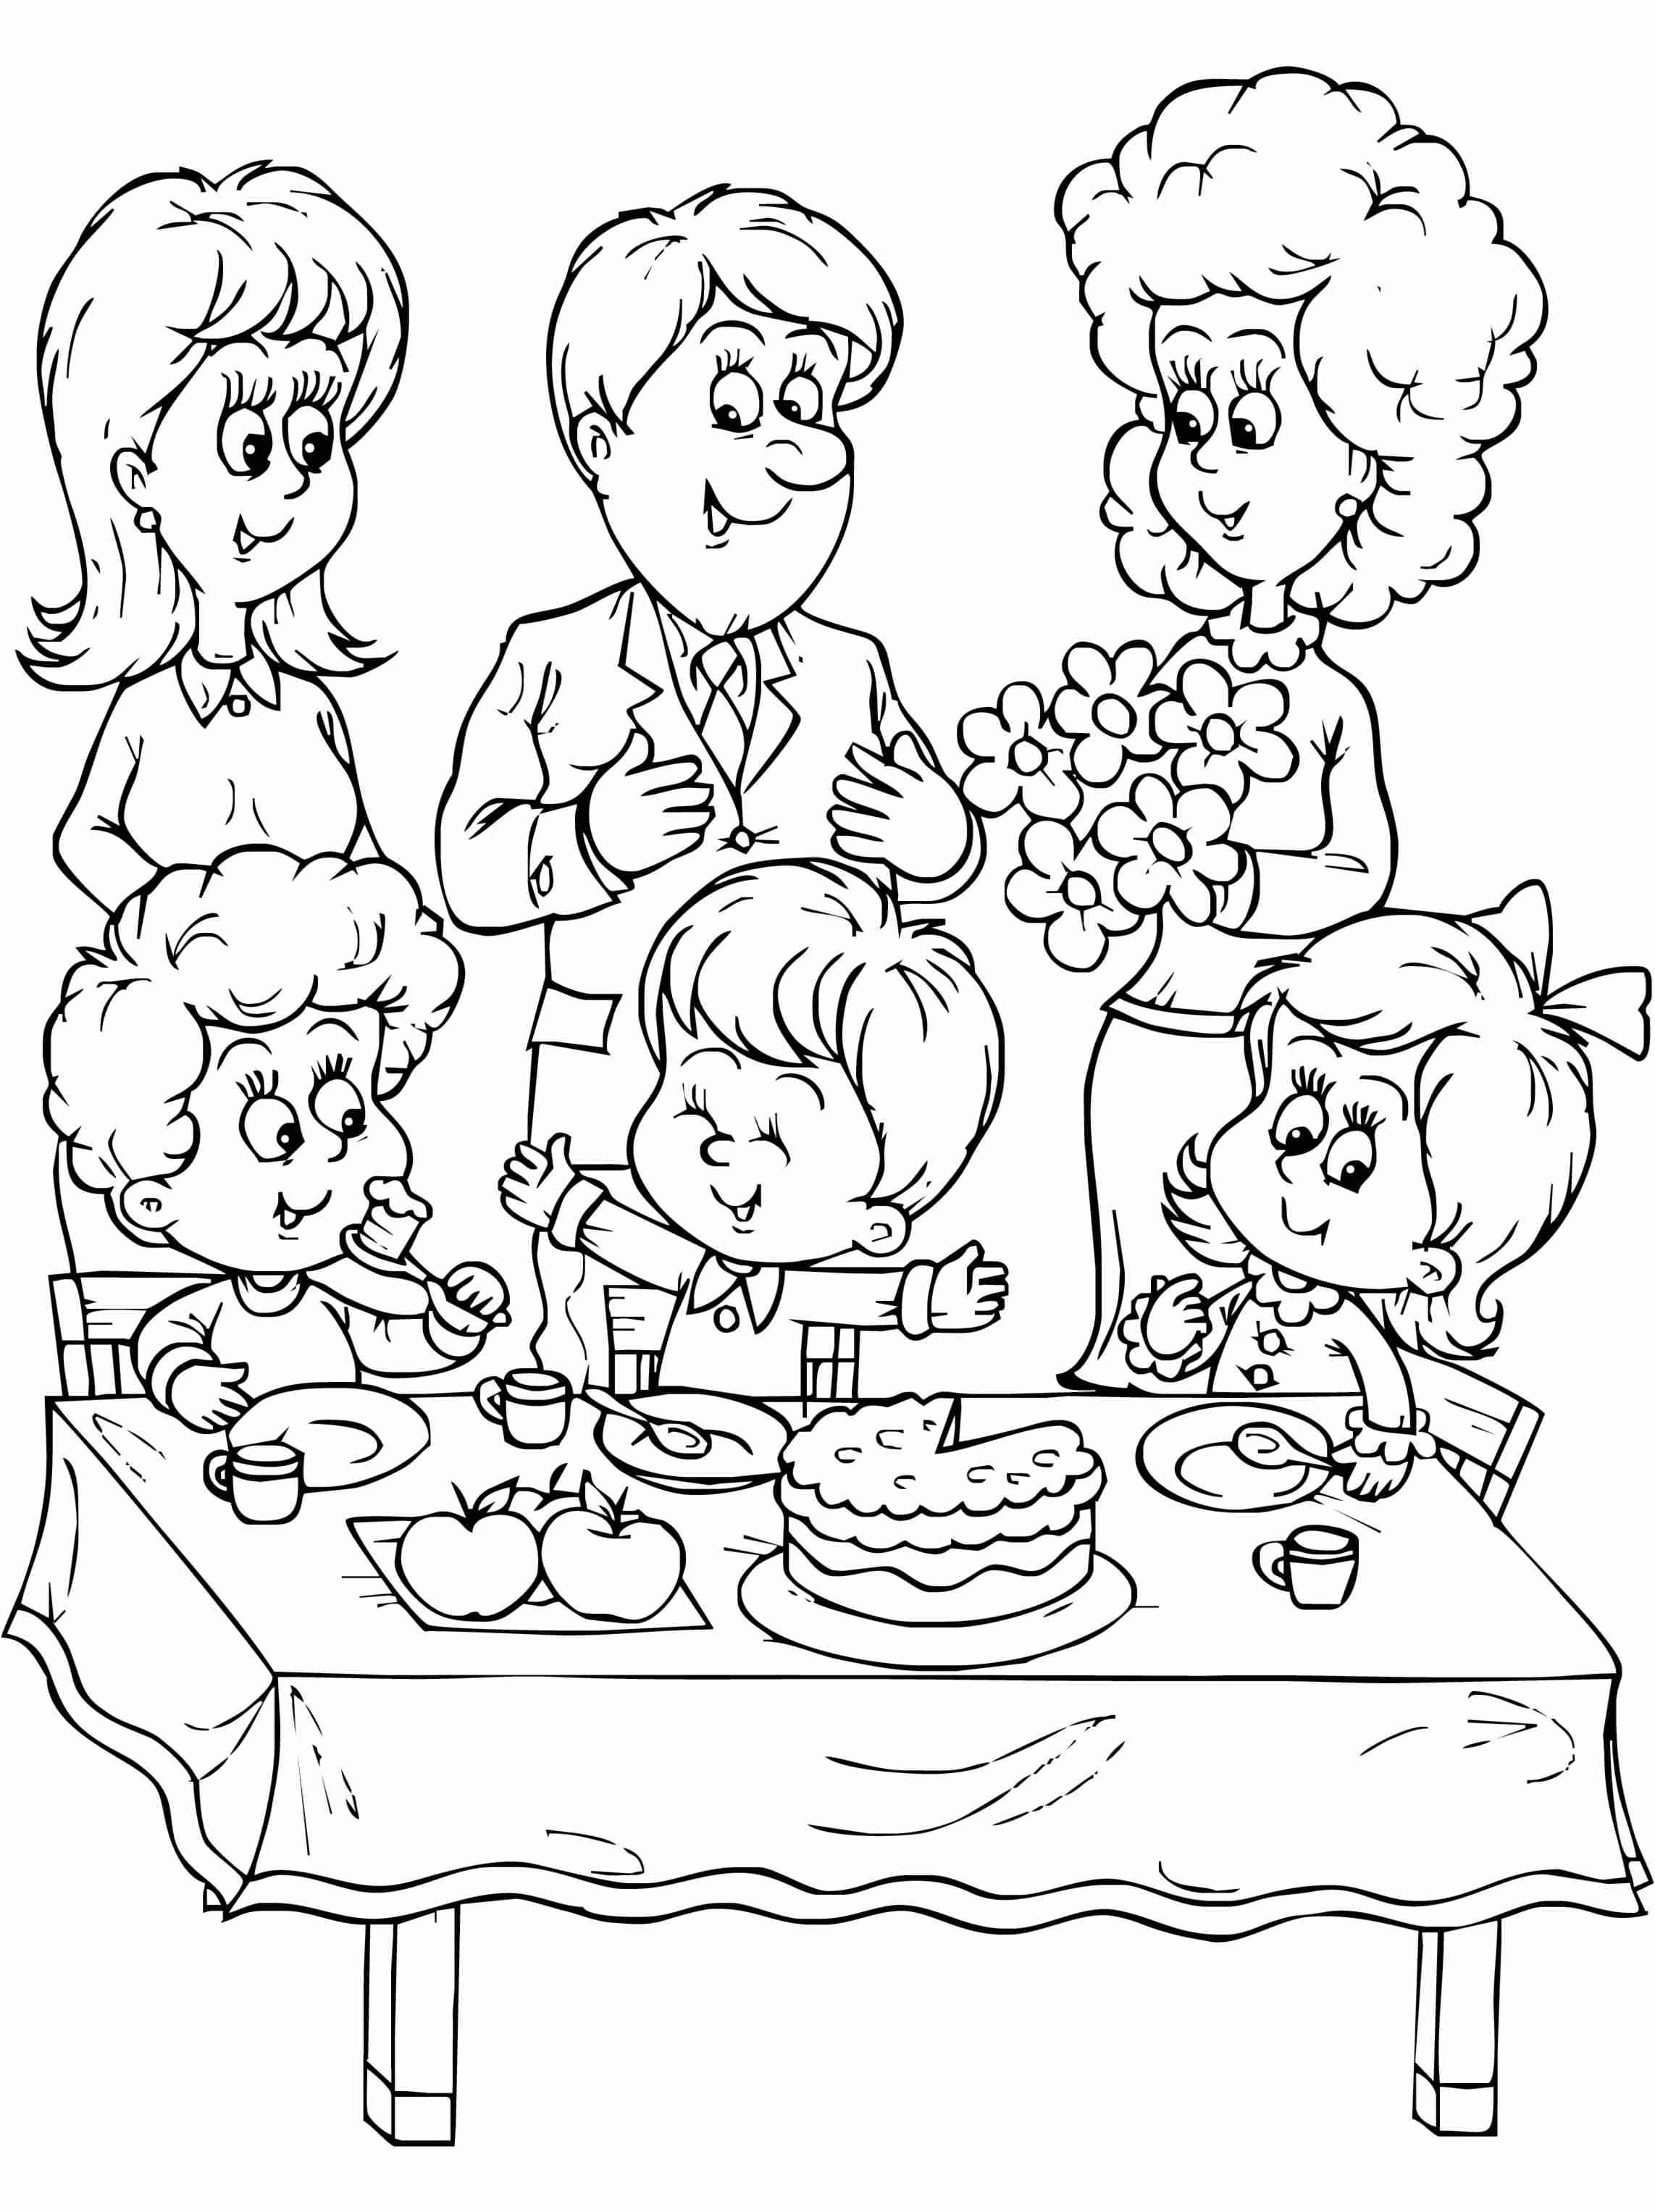 Family Coloring Pages For Preschoolers At Getcolorings